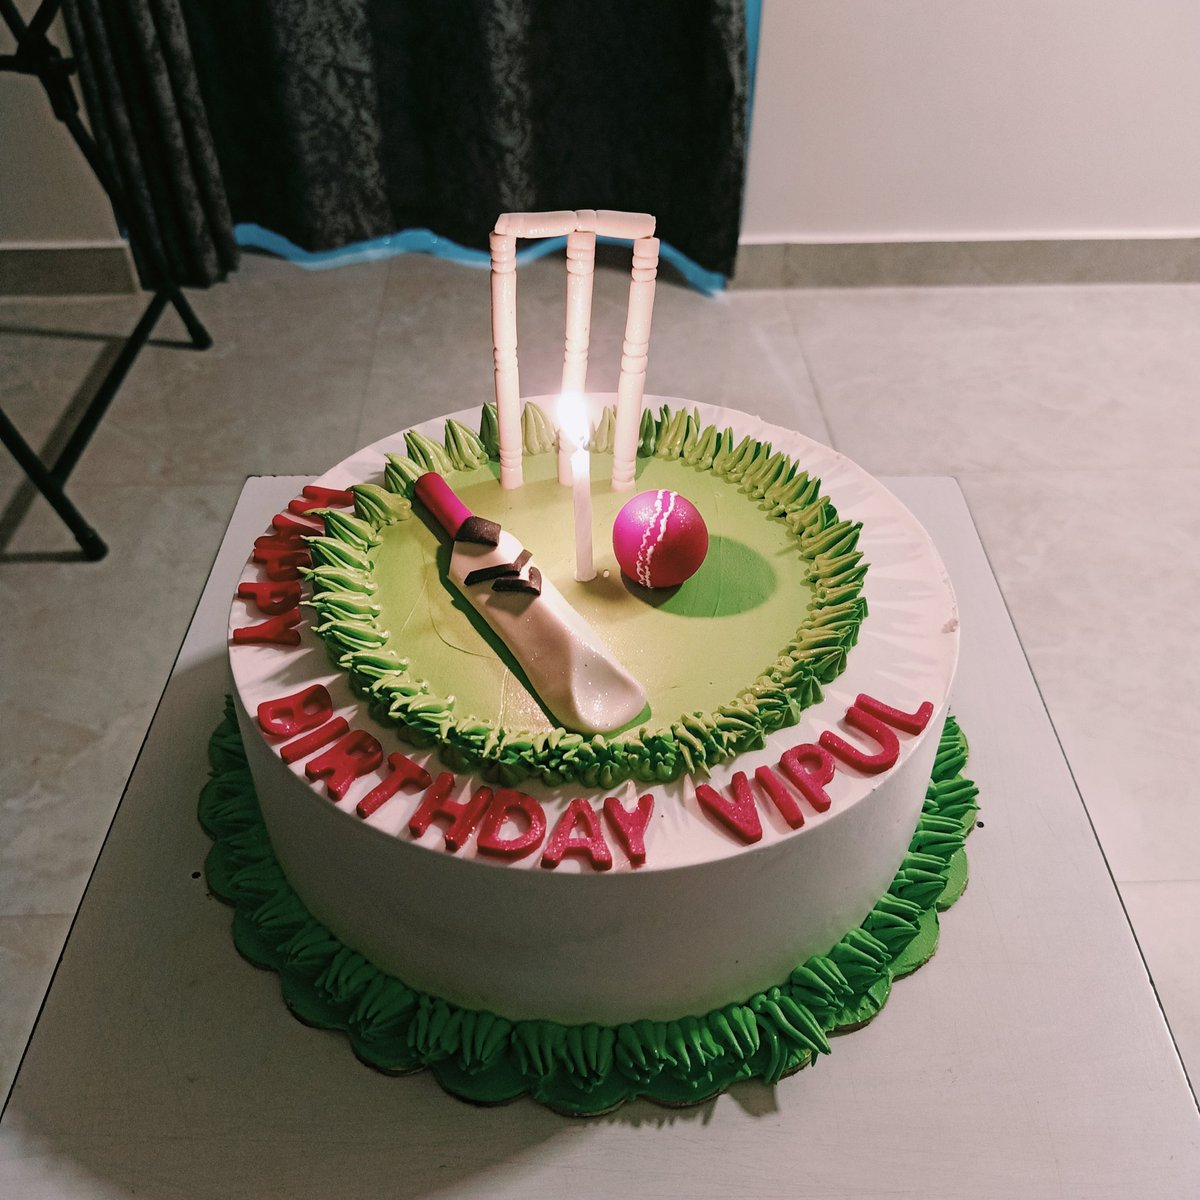 Celebrated my birthday and #teamIndia victory combined! #INDvsAUS